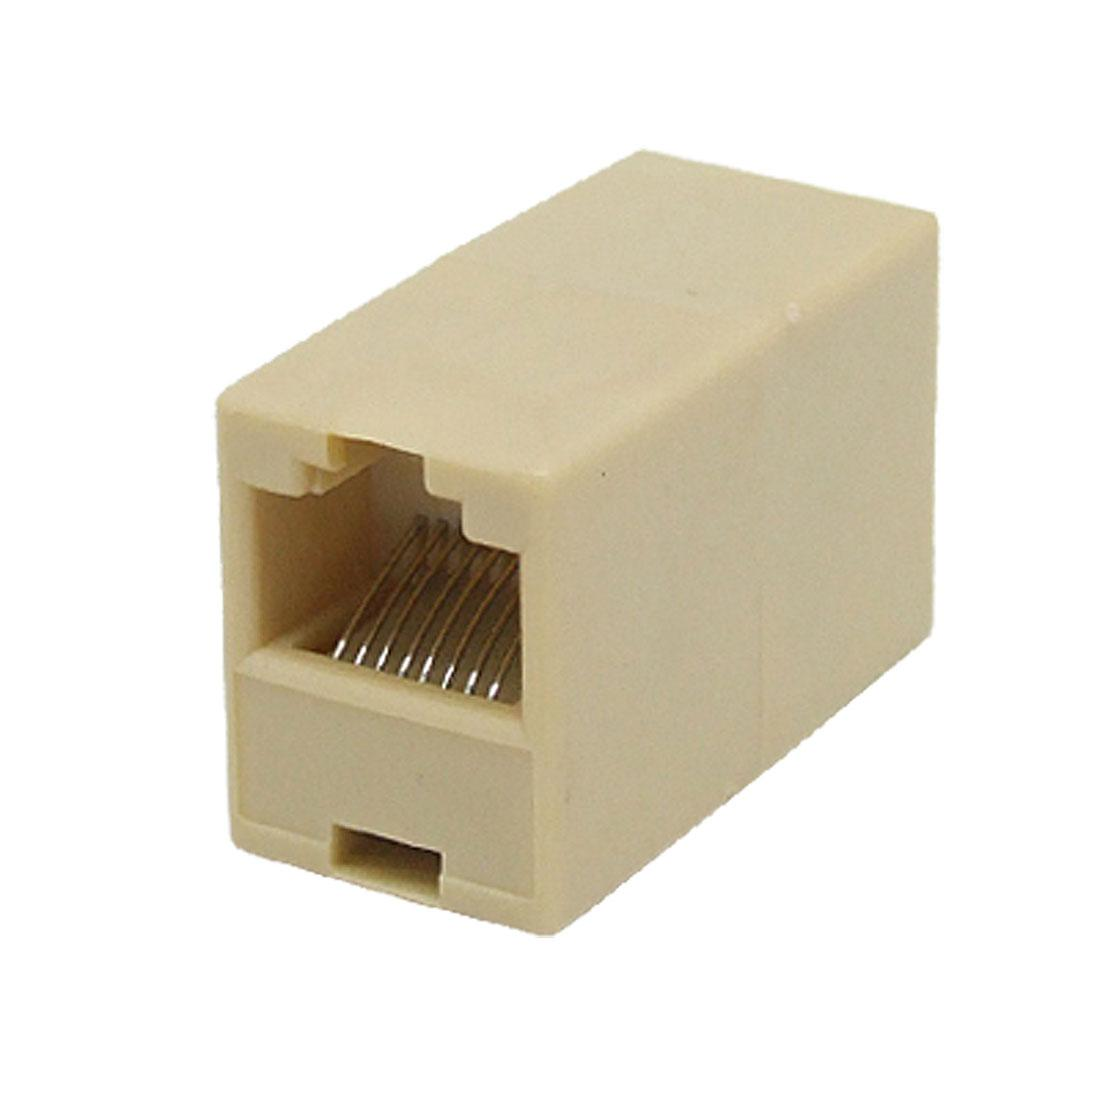 Amazing internet connector contemporary everything you need to rj45 internet network inline cable coupler connector female jack asfbconference2016 Choice Image